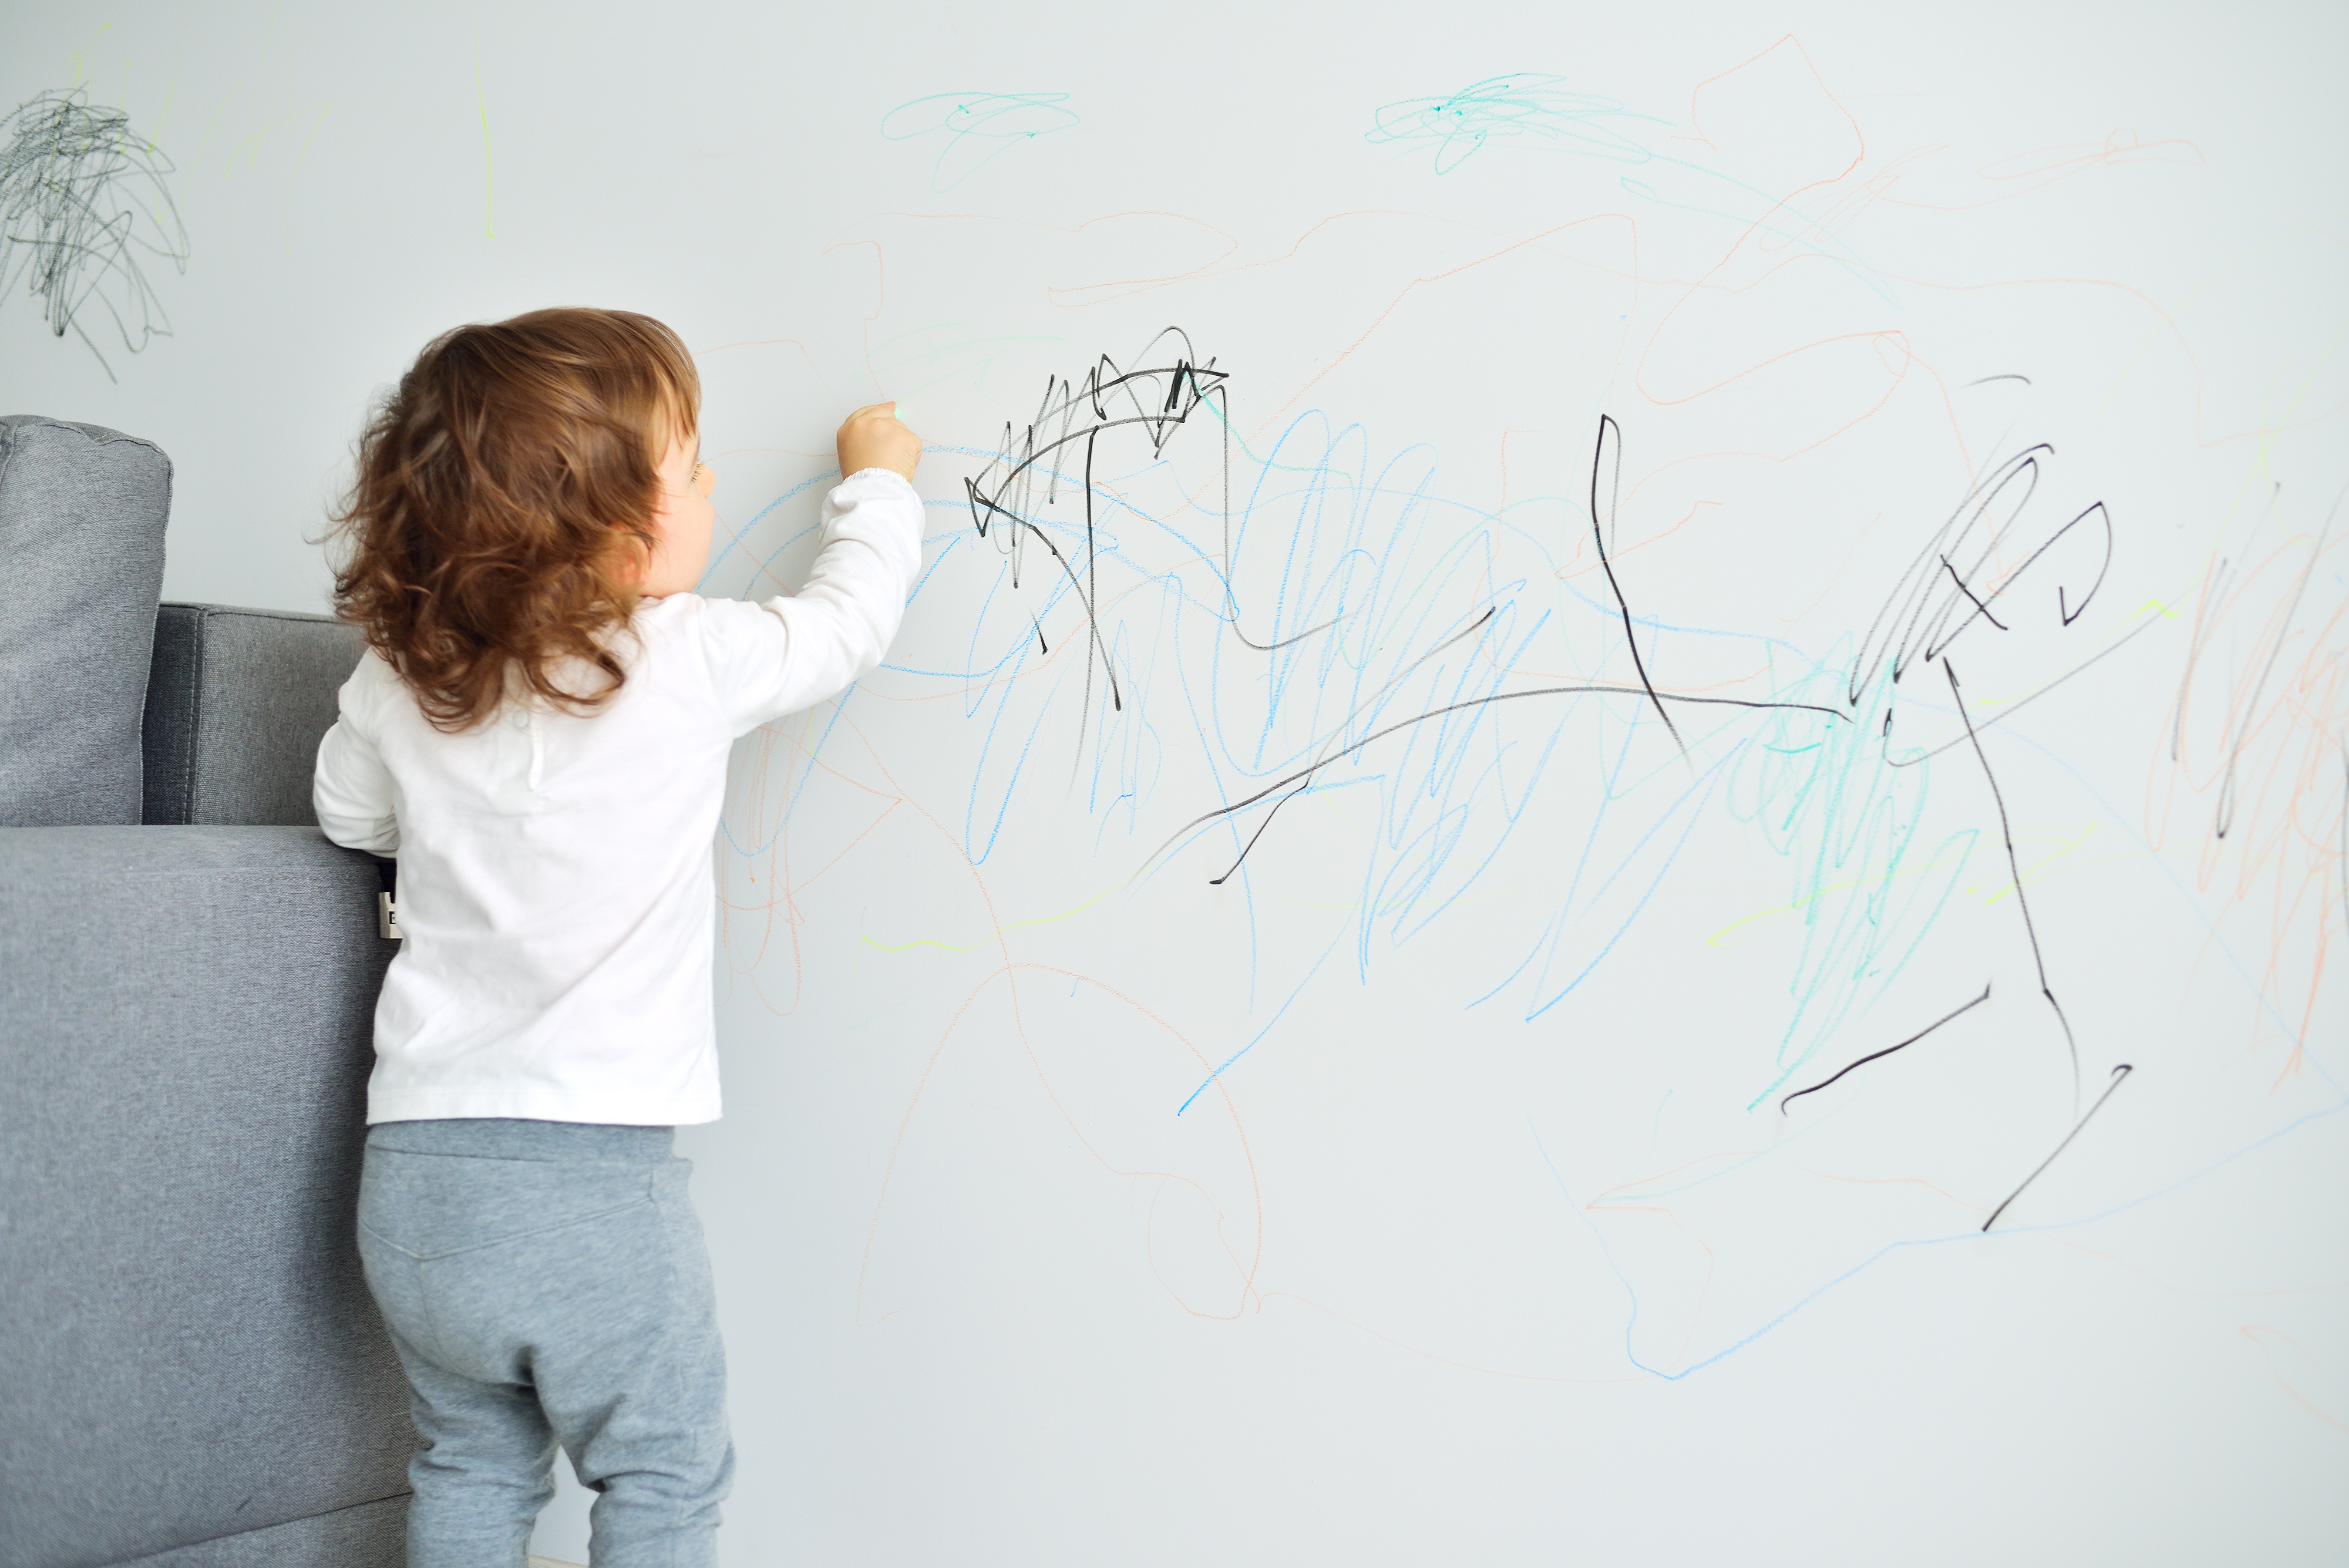 Child drawing on walls